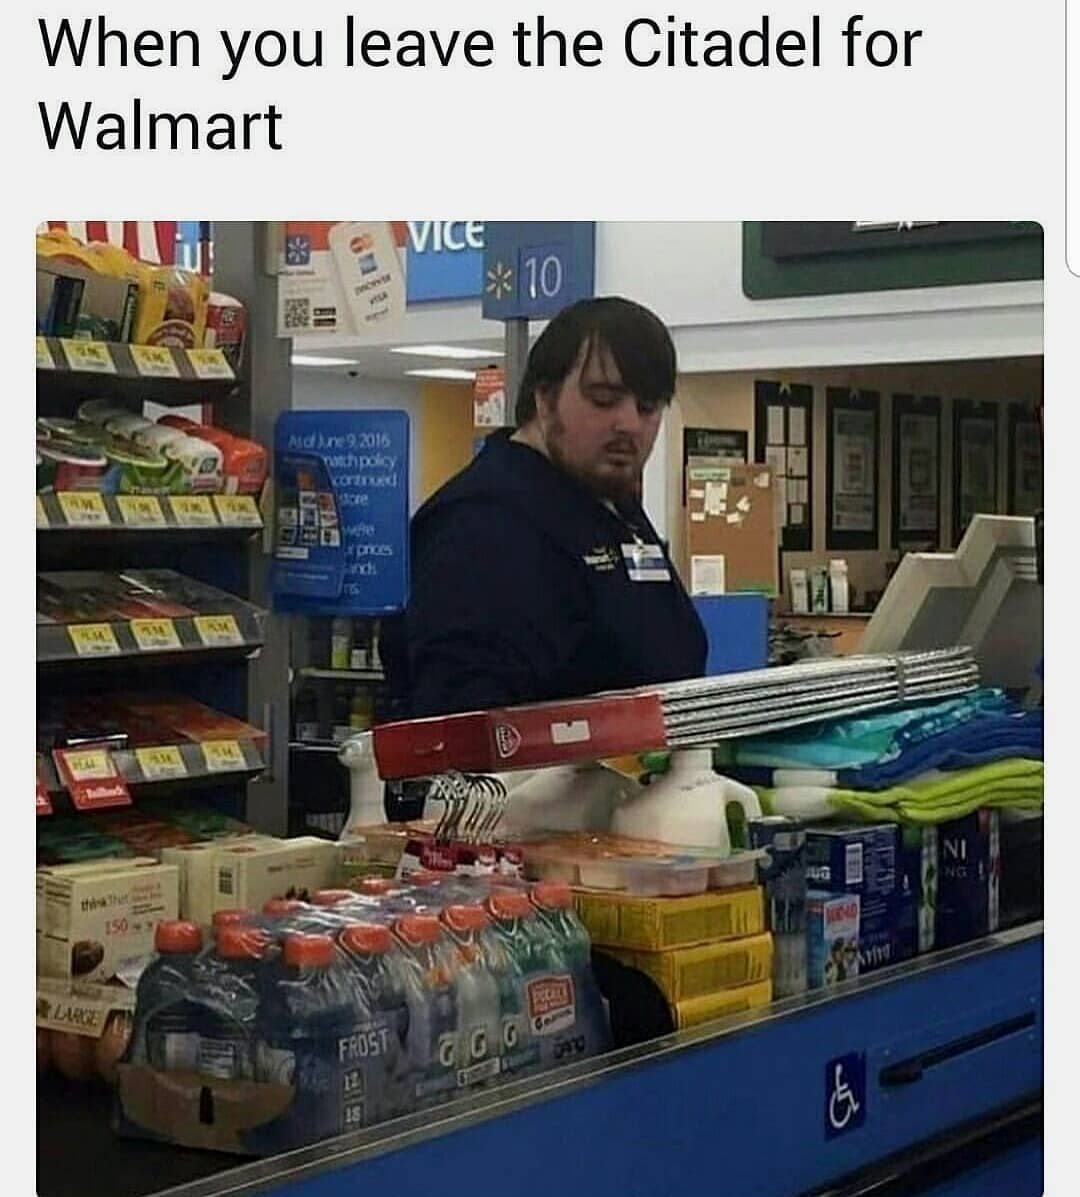 GoT - Citadel to Walmart.jpg